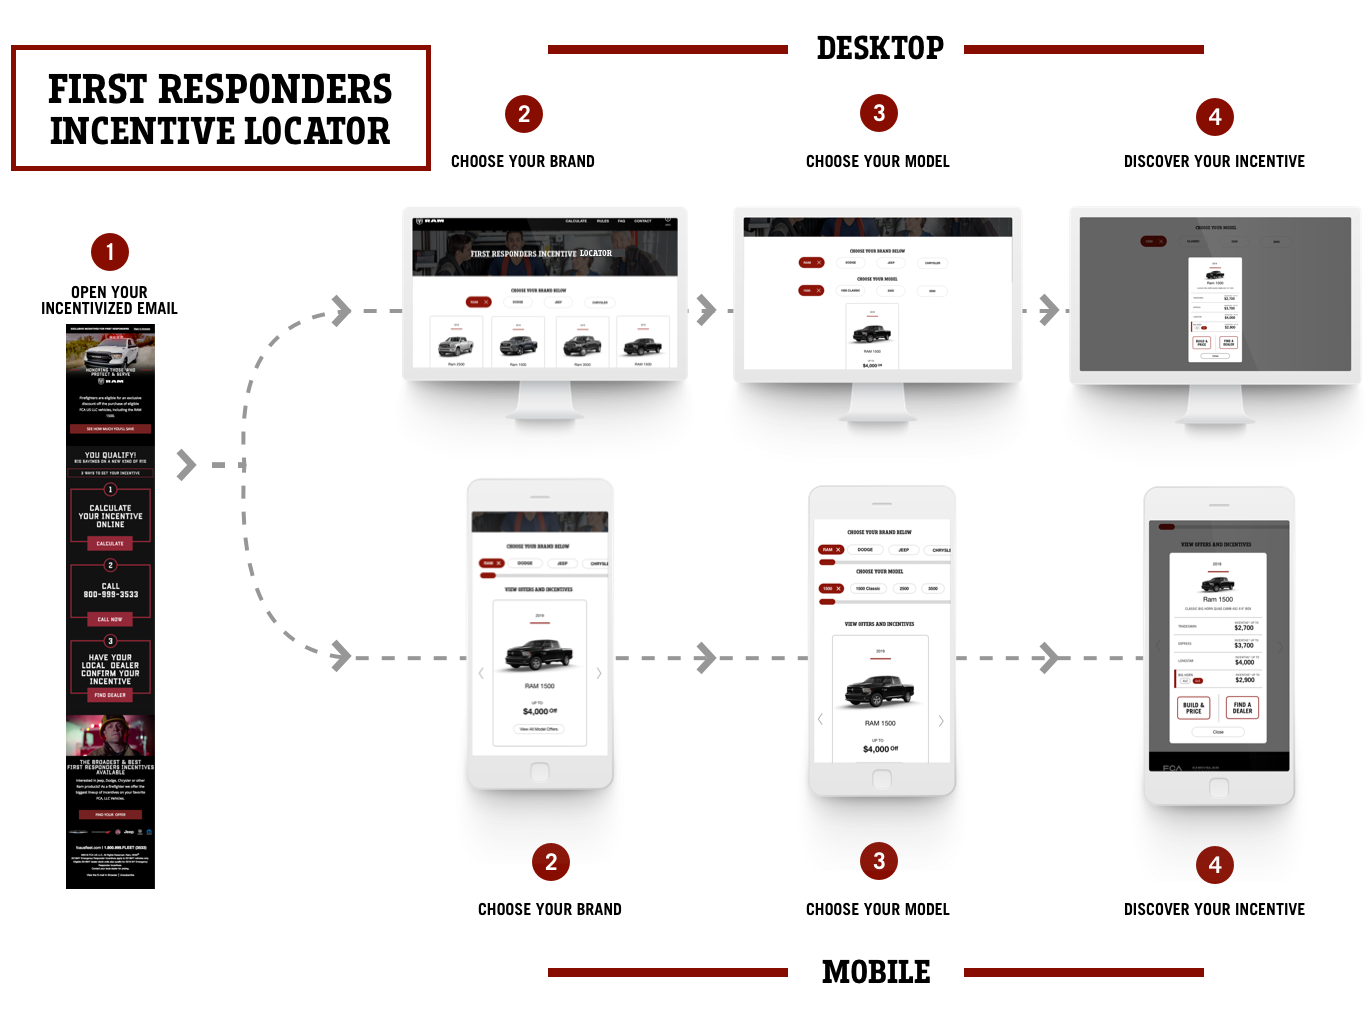 First Responders Campaign User Flow Graphic infographic crm email campaign web  design ux user experience ui illustration